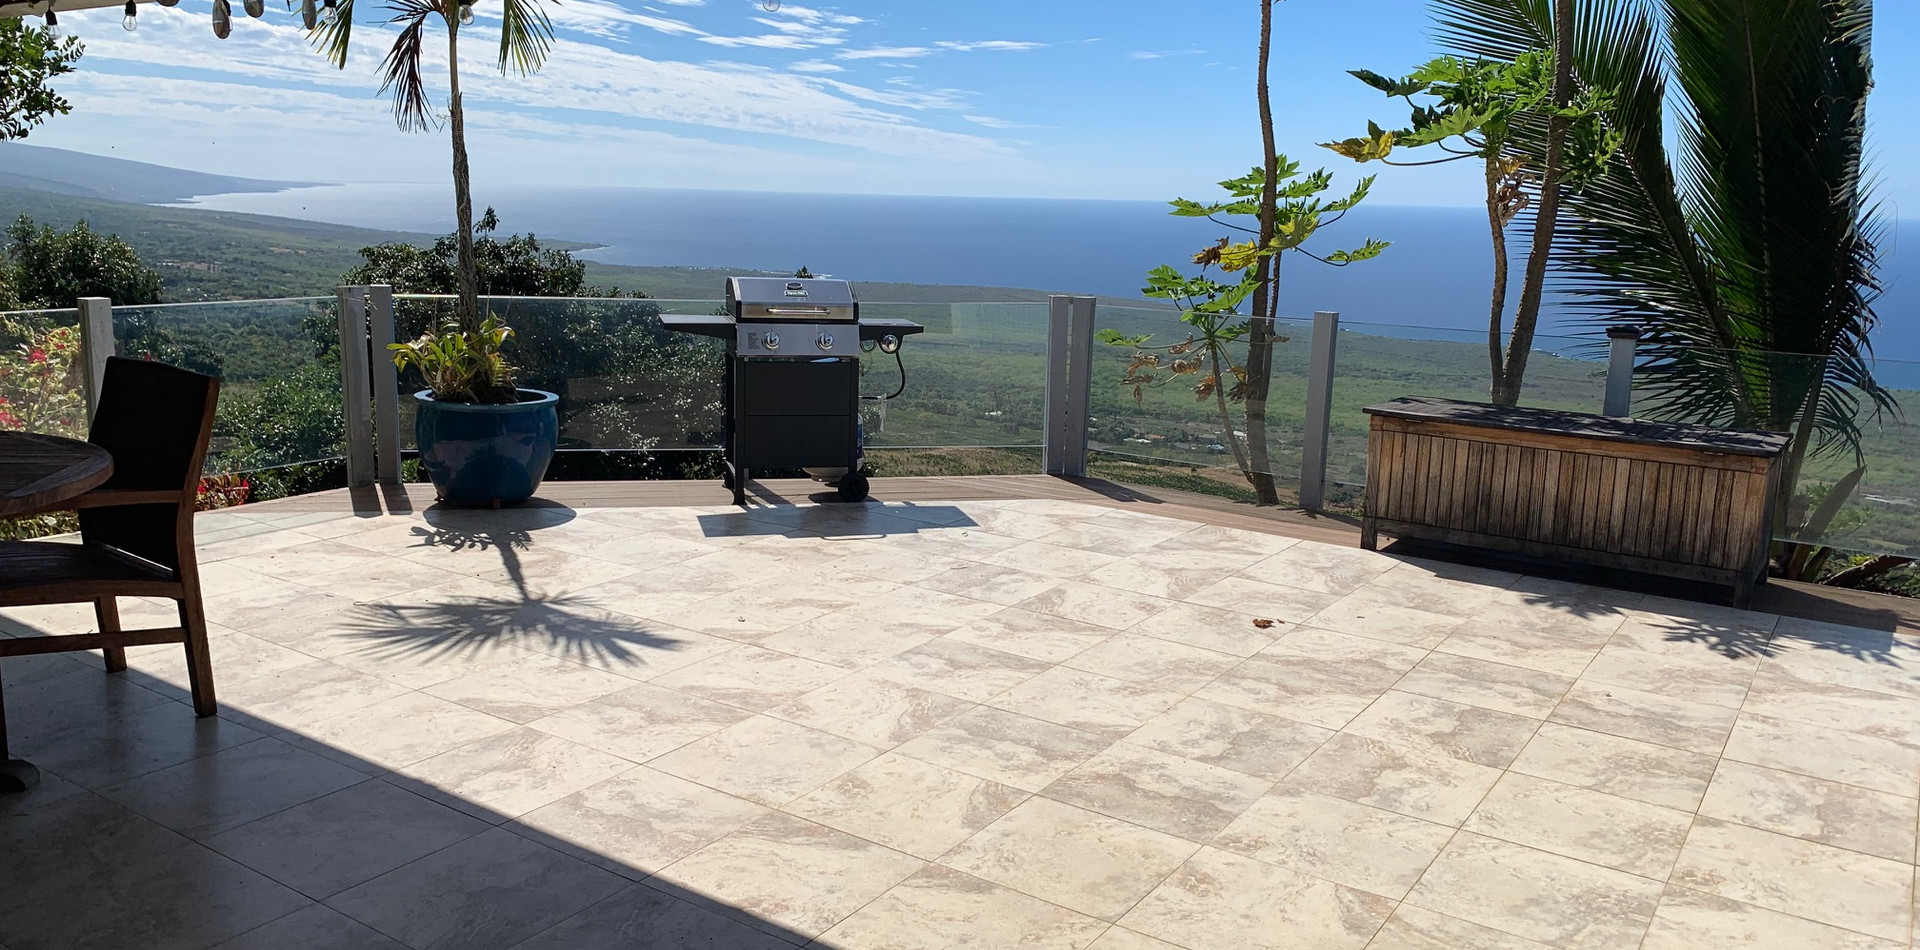 The Coffee Shack Vacation Rental